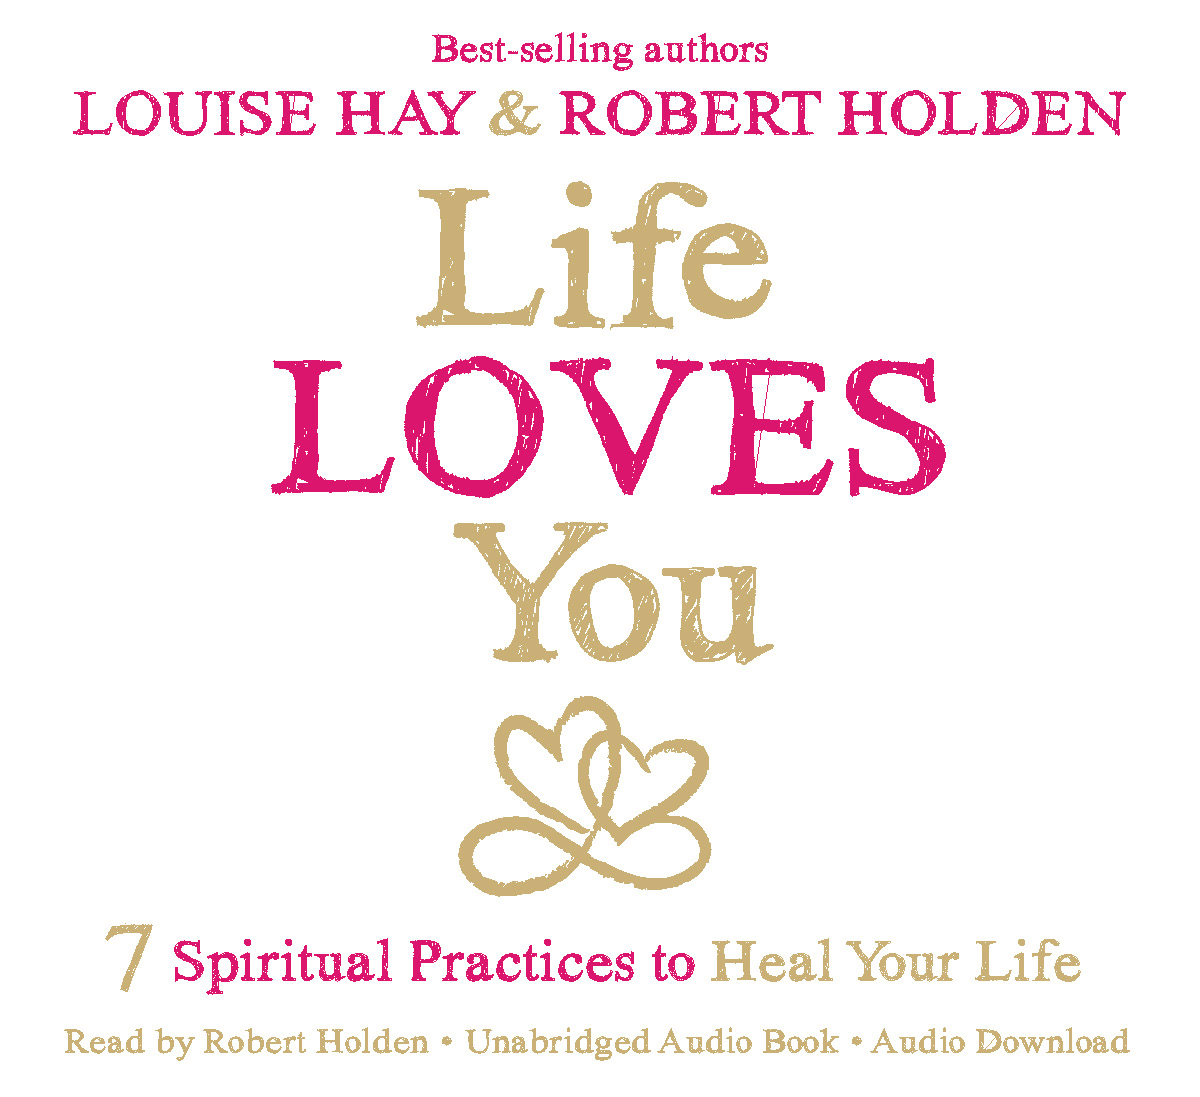 Audio Quotes About Life Audio Downloads  Robert Holden Ph.d.